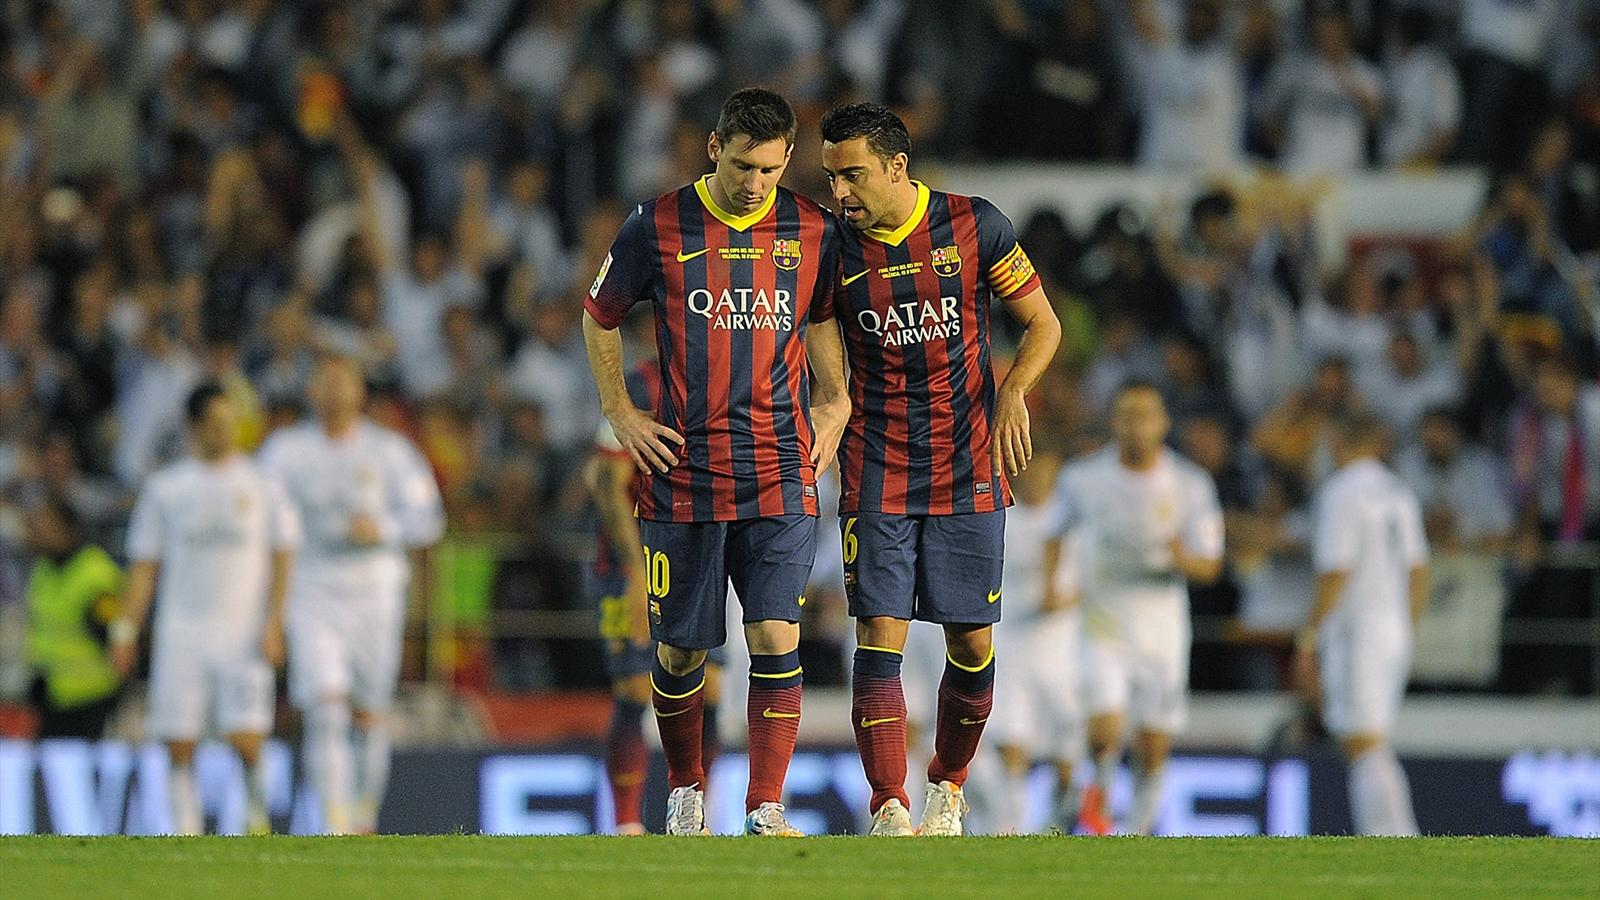 Bildtext:VALENCIA, SPAIN - APRIL 16: Lionel Messi (L) and Xavi Hernandez of Barcelona react after Real Madrid scored their opening goal during the Copa del Rey Final between Real Madrid and Barcelona at Estadio Mestalla on April 16, 2014 in Valencia, Spai